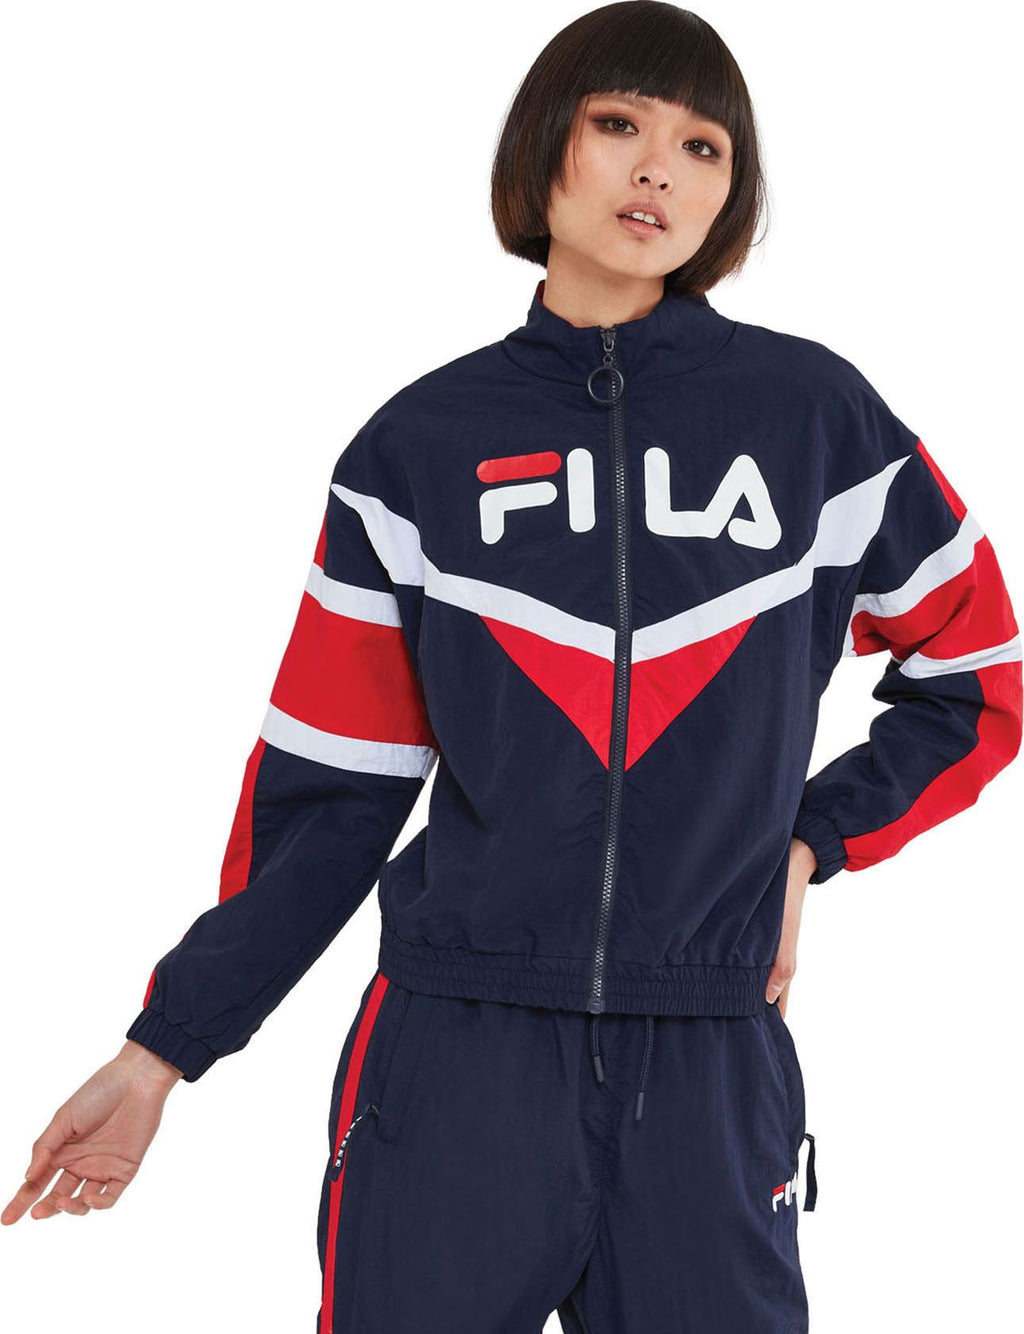 Fila-Jolie-Zip-Front-Track-Top-Blue